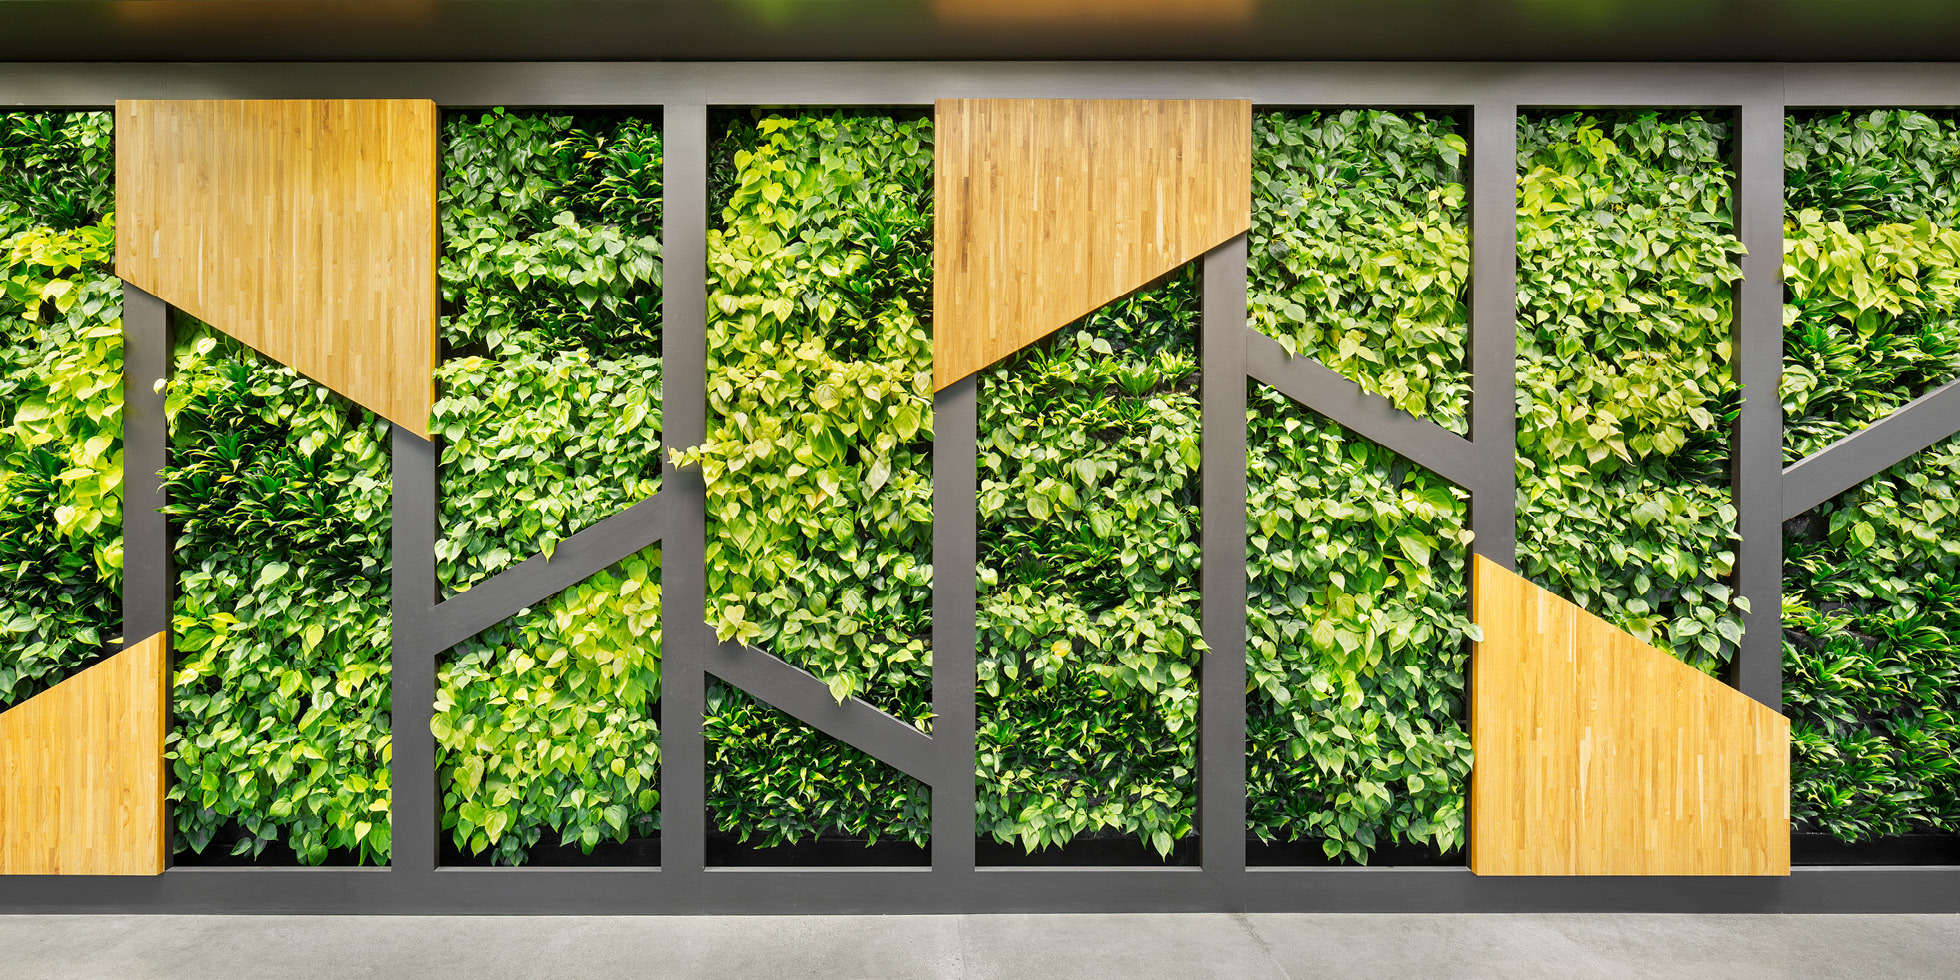 Symantec Living Wall by Habitat Horticulture - View 1